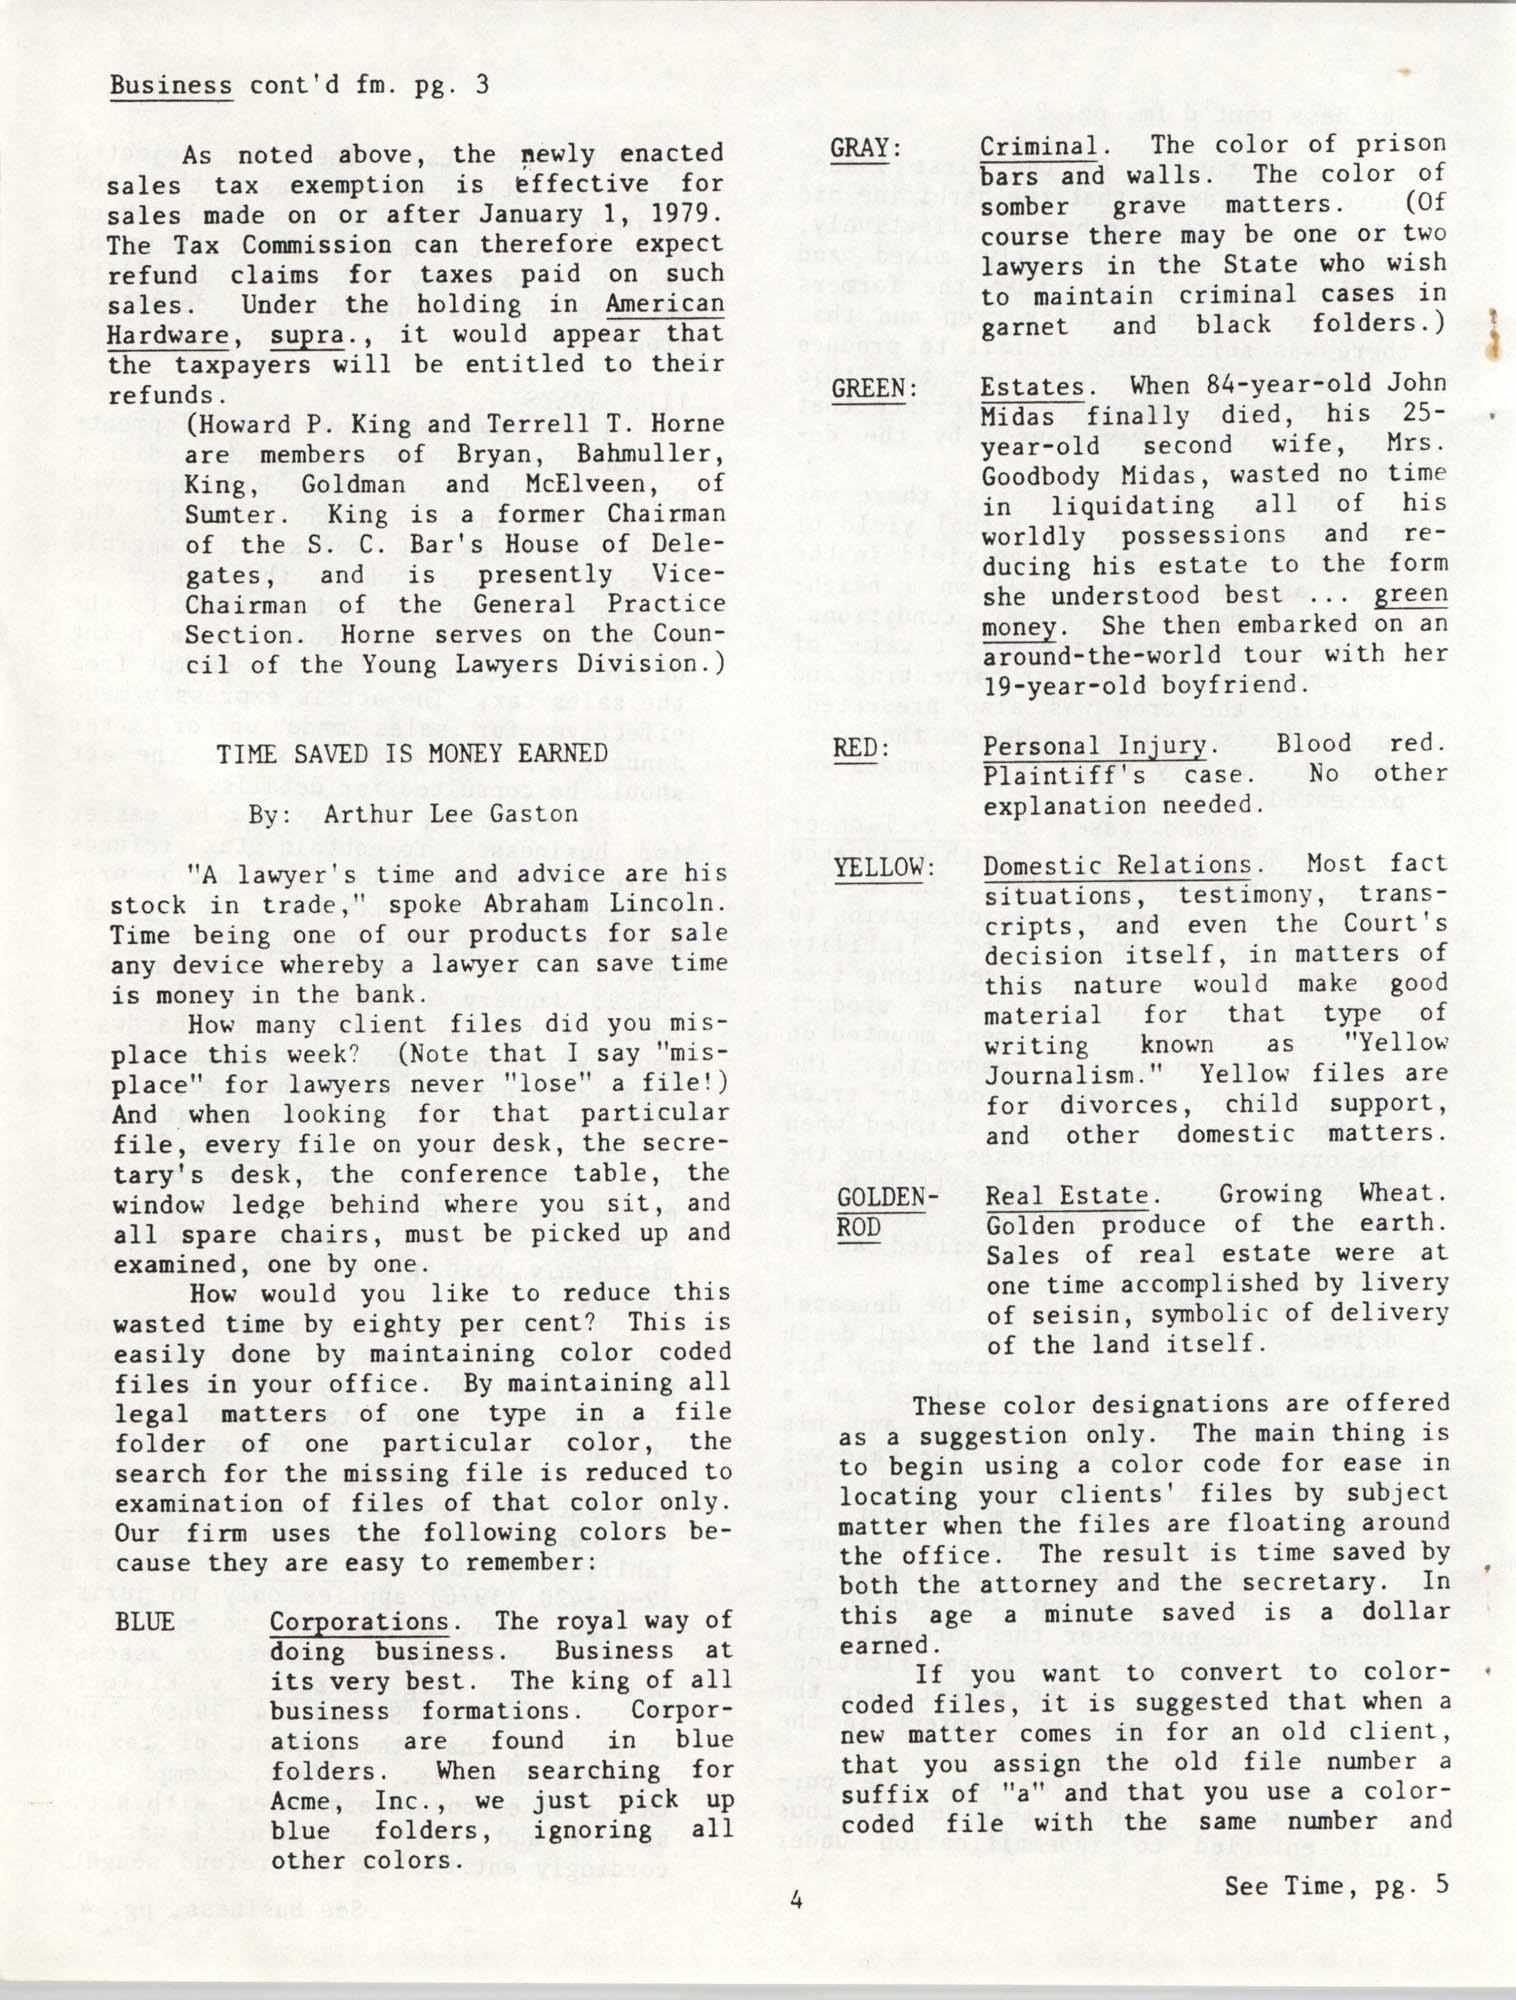 The General Practice Section Update, Vol. 1 No. 1, South Carolina Bar, November 1983, Page 4